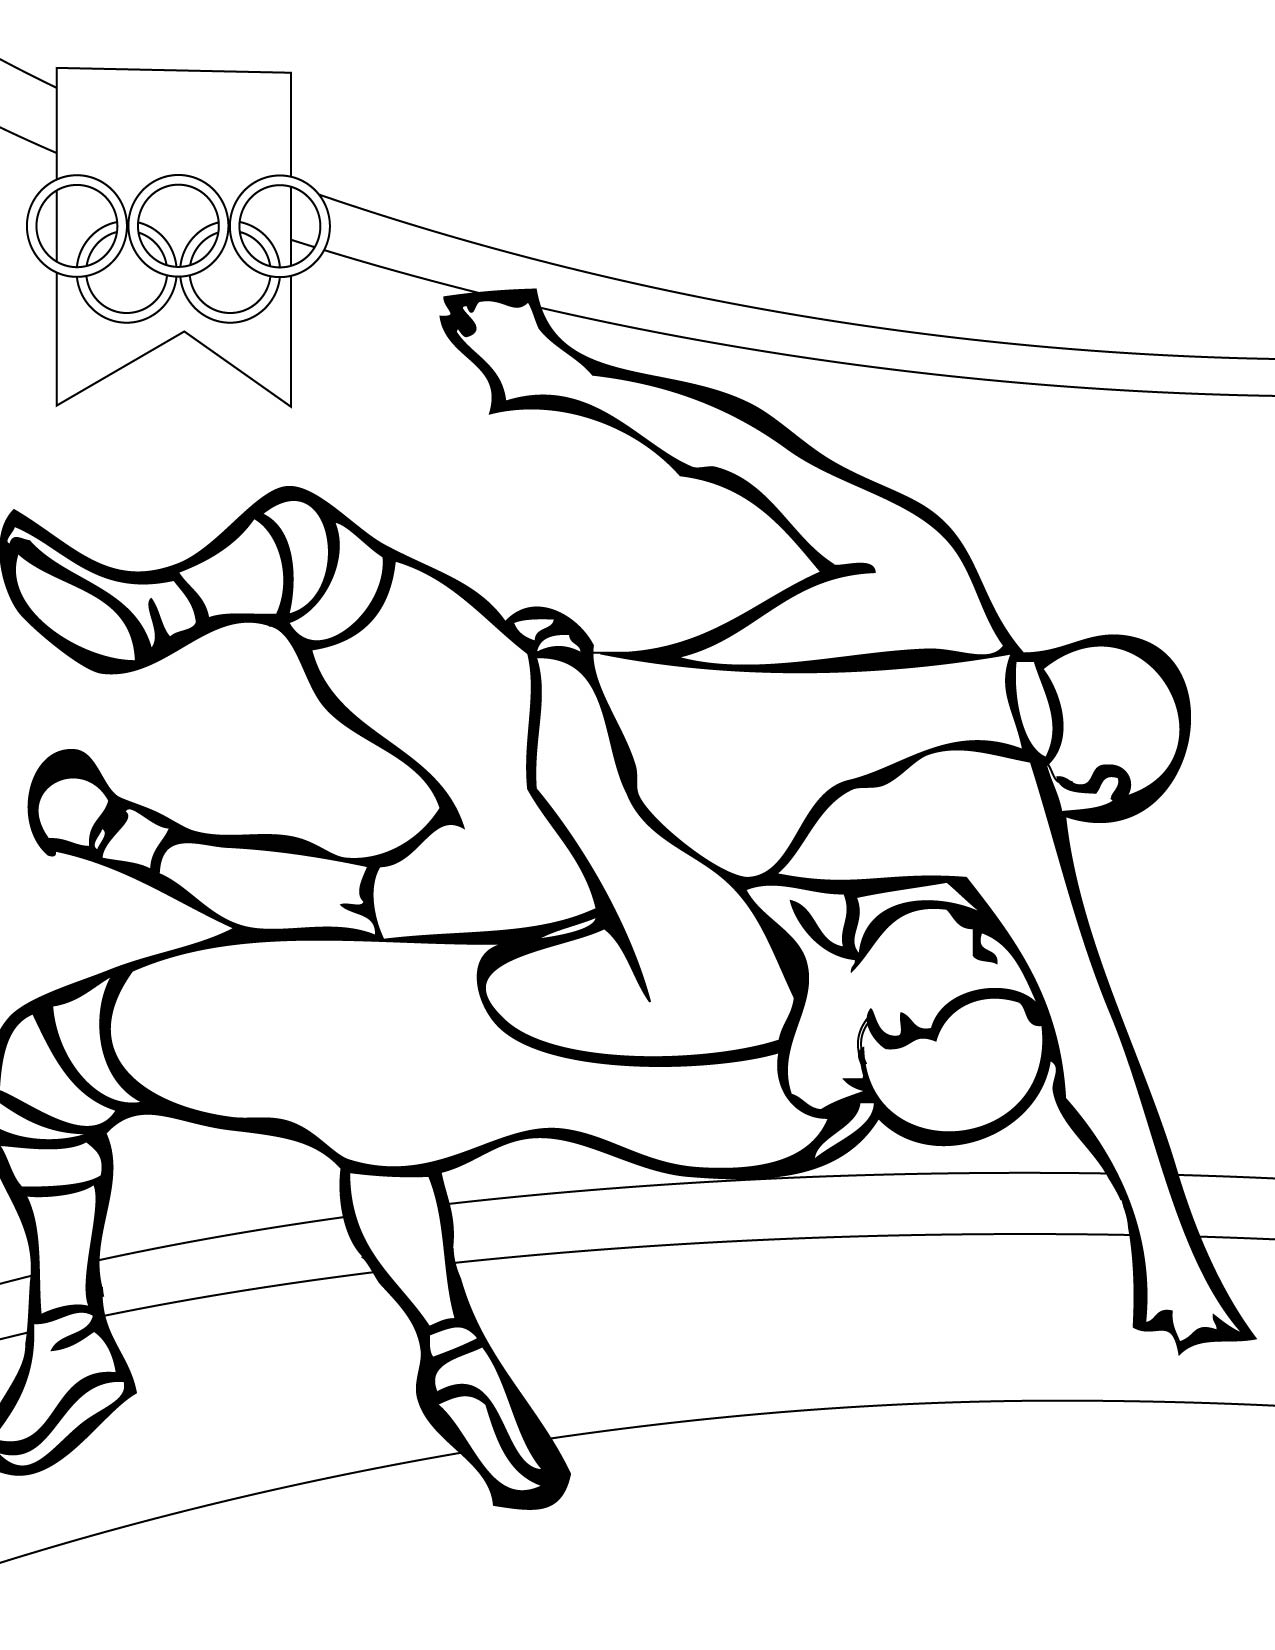 Wrestling Coloring Page Handipoints